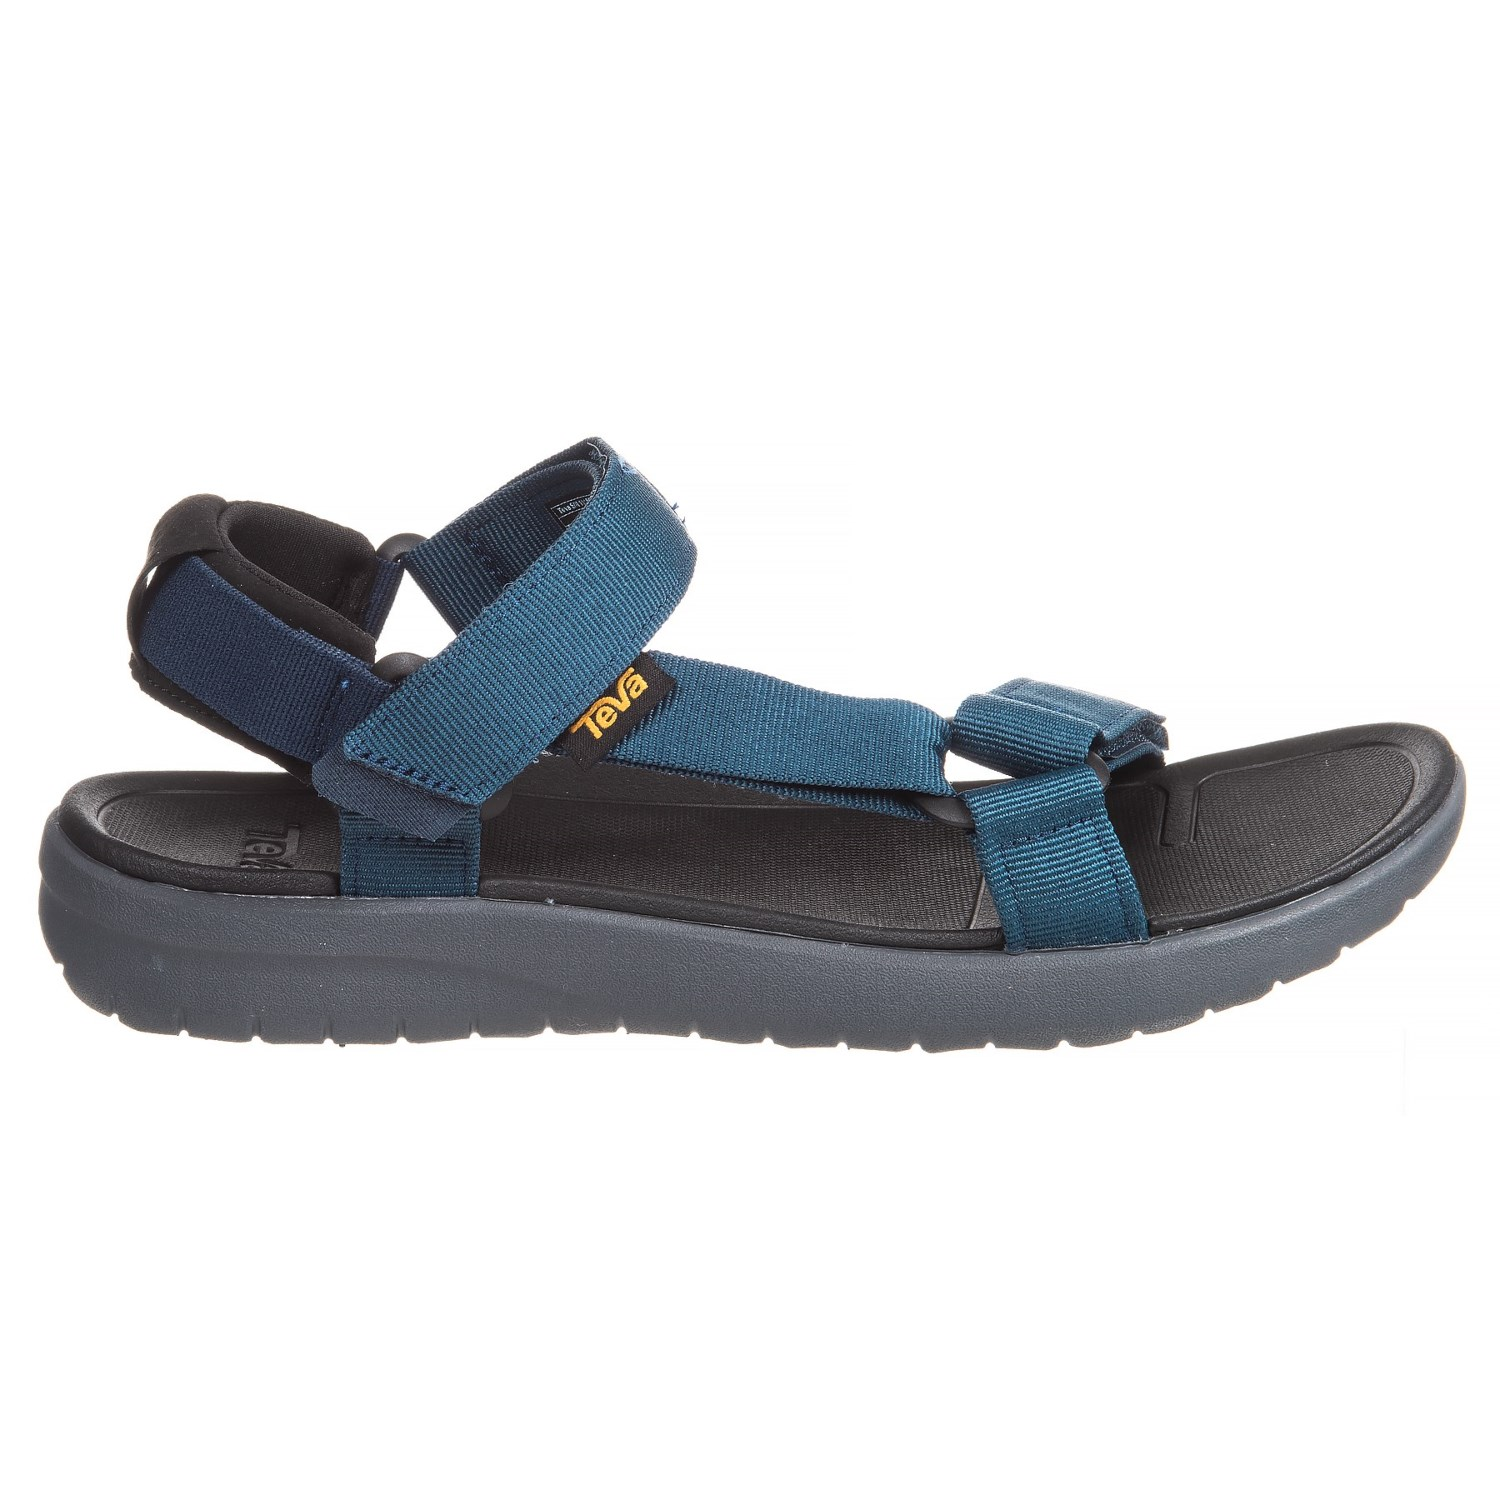 7b74fc774 Teva Sanborn Universal Sport Sandals (For Men) - Save 56%